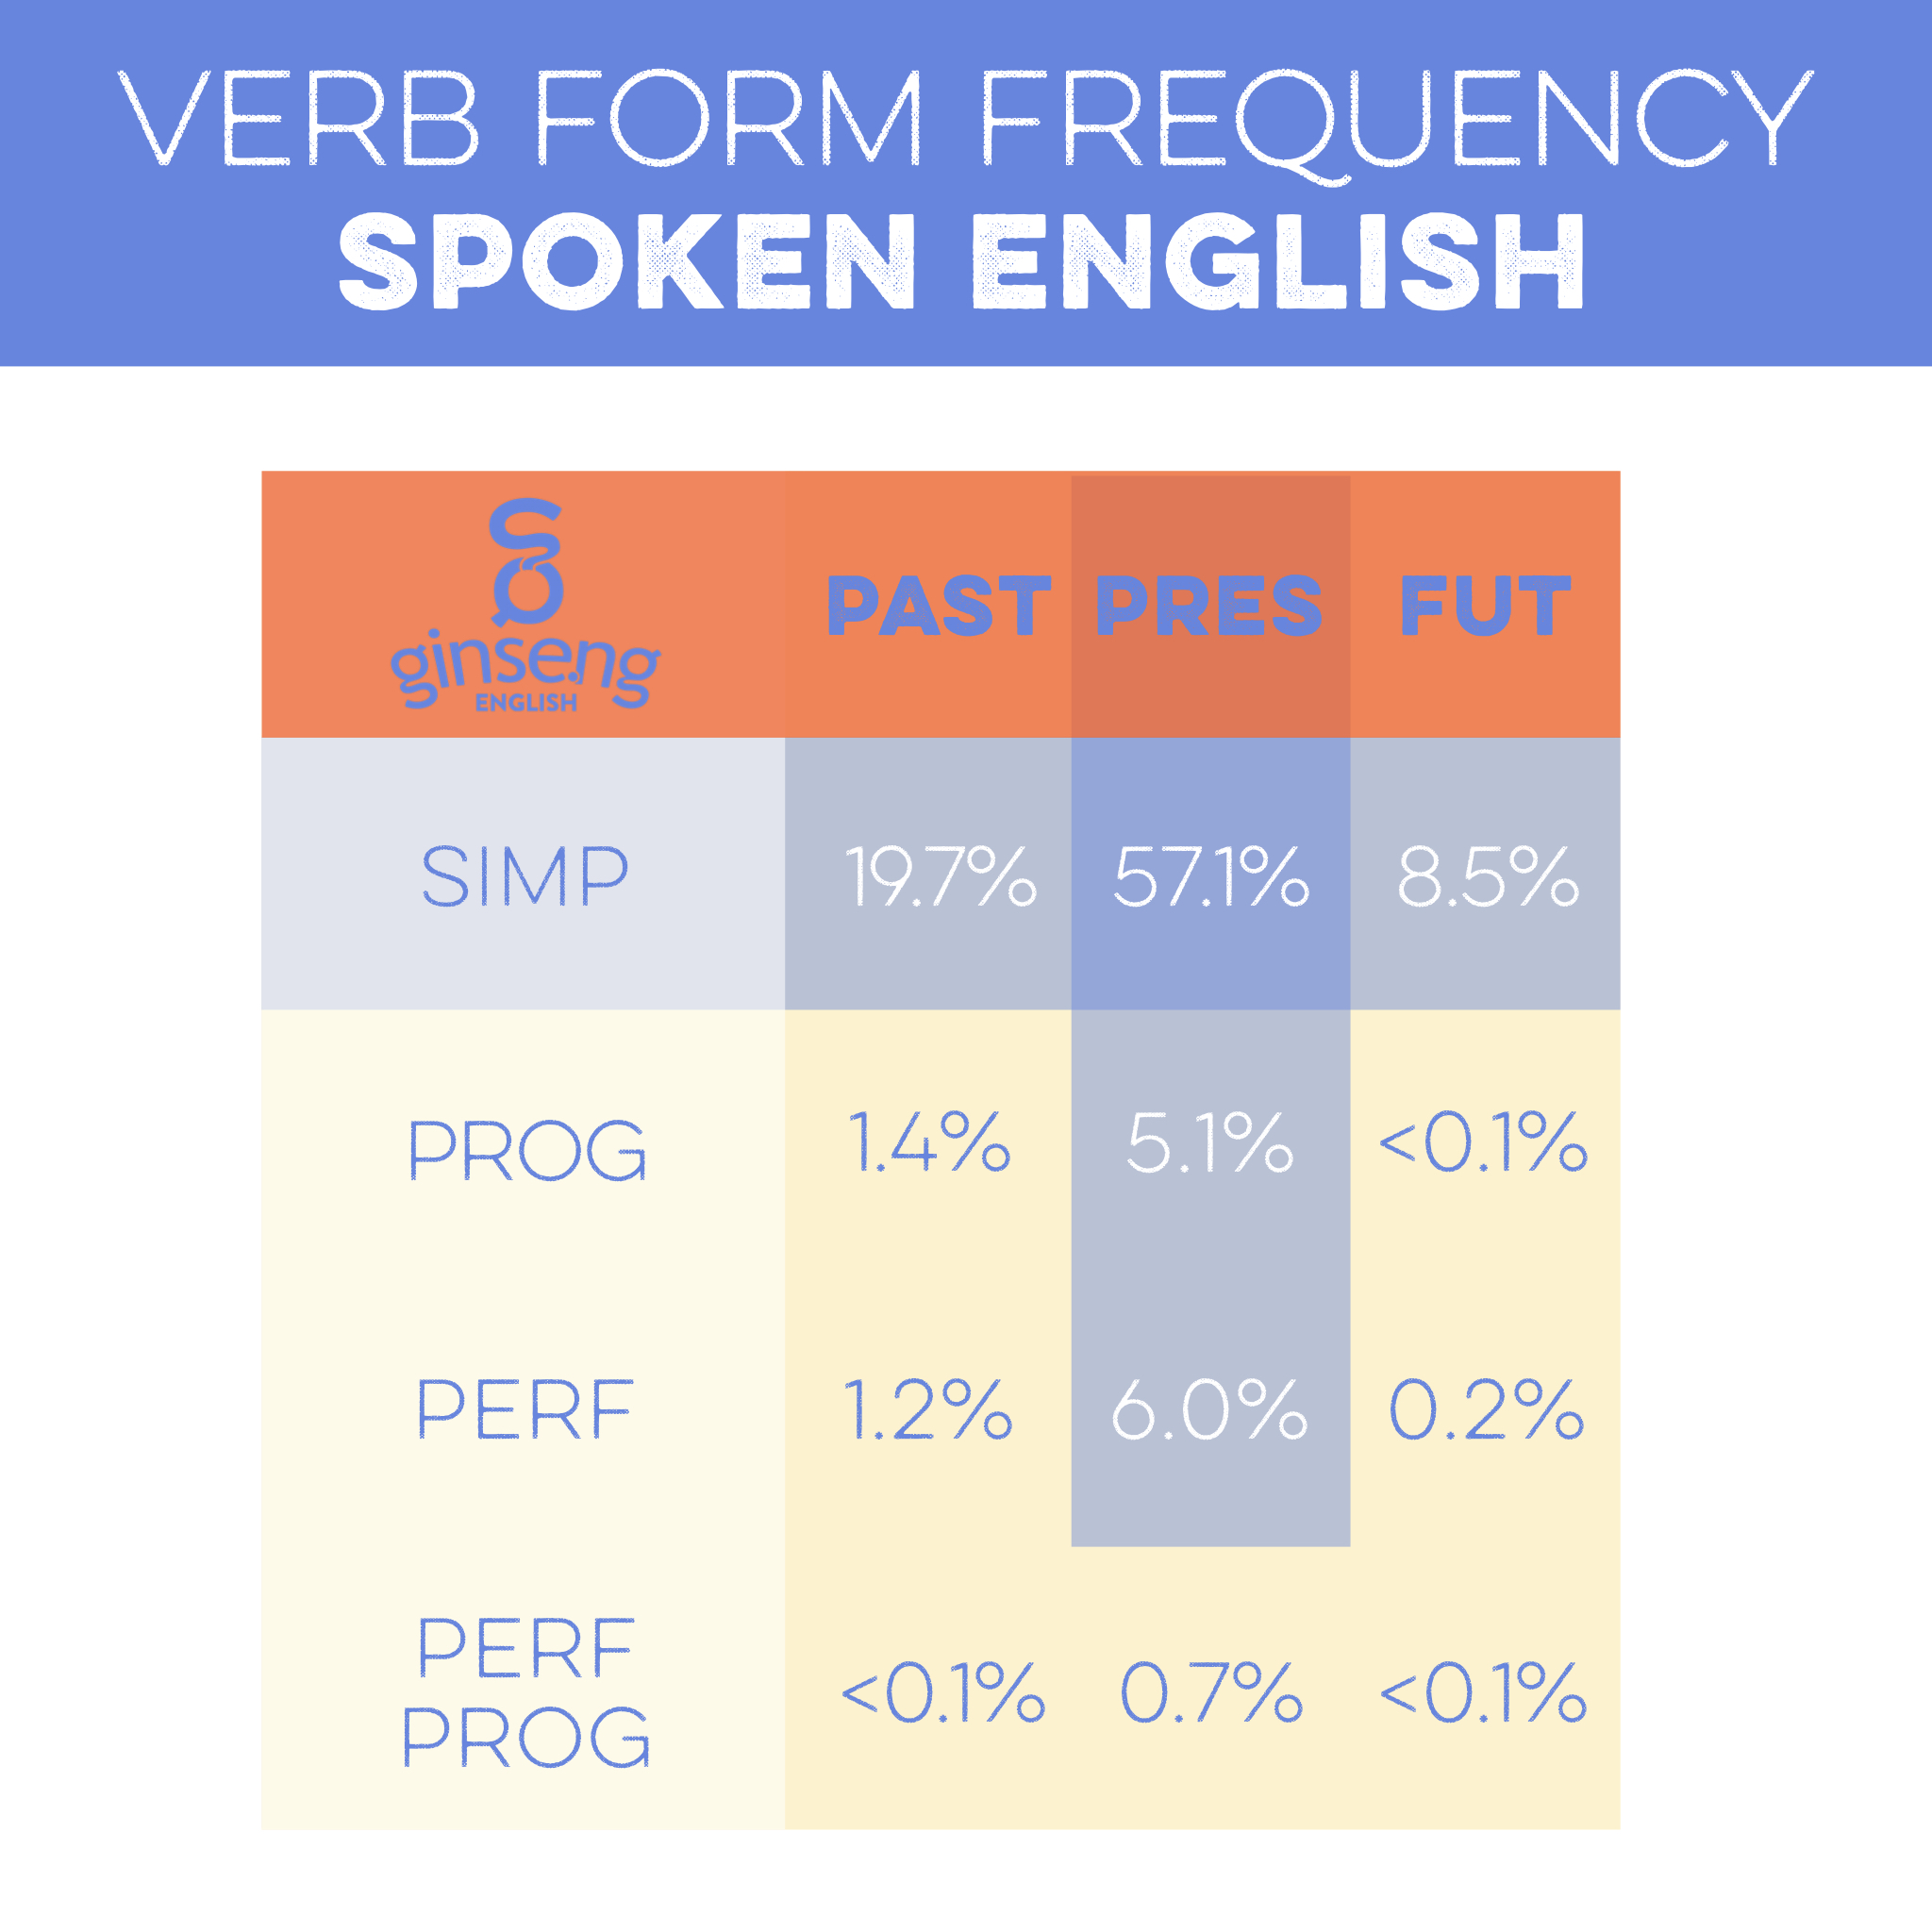 5 verb forms make up 96% of all verbs in spoken English.